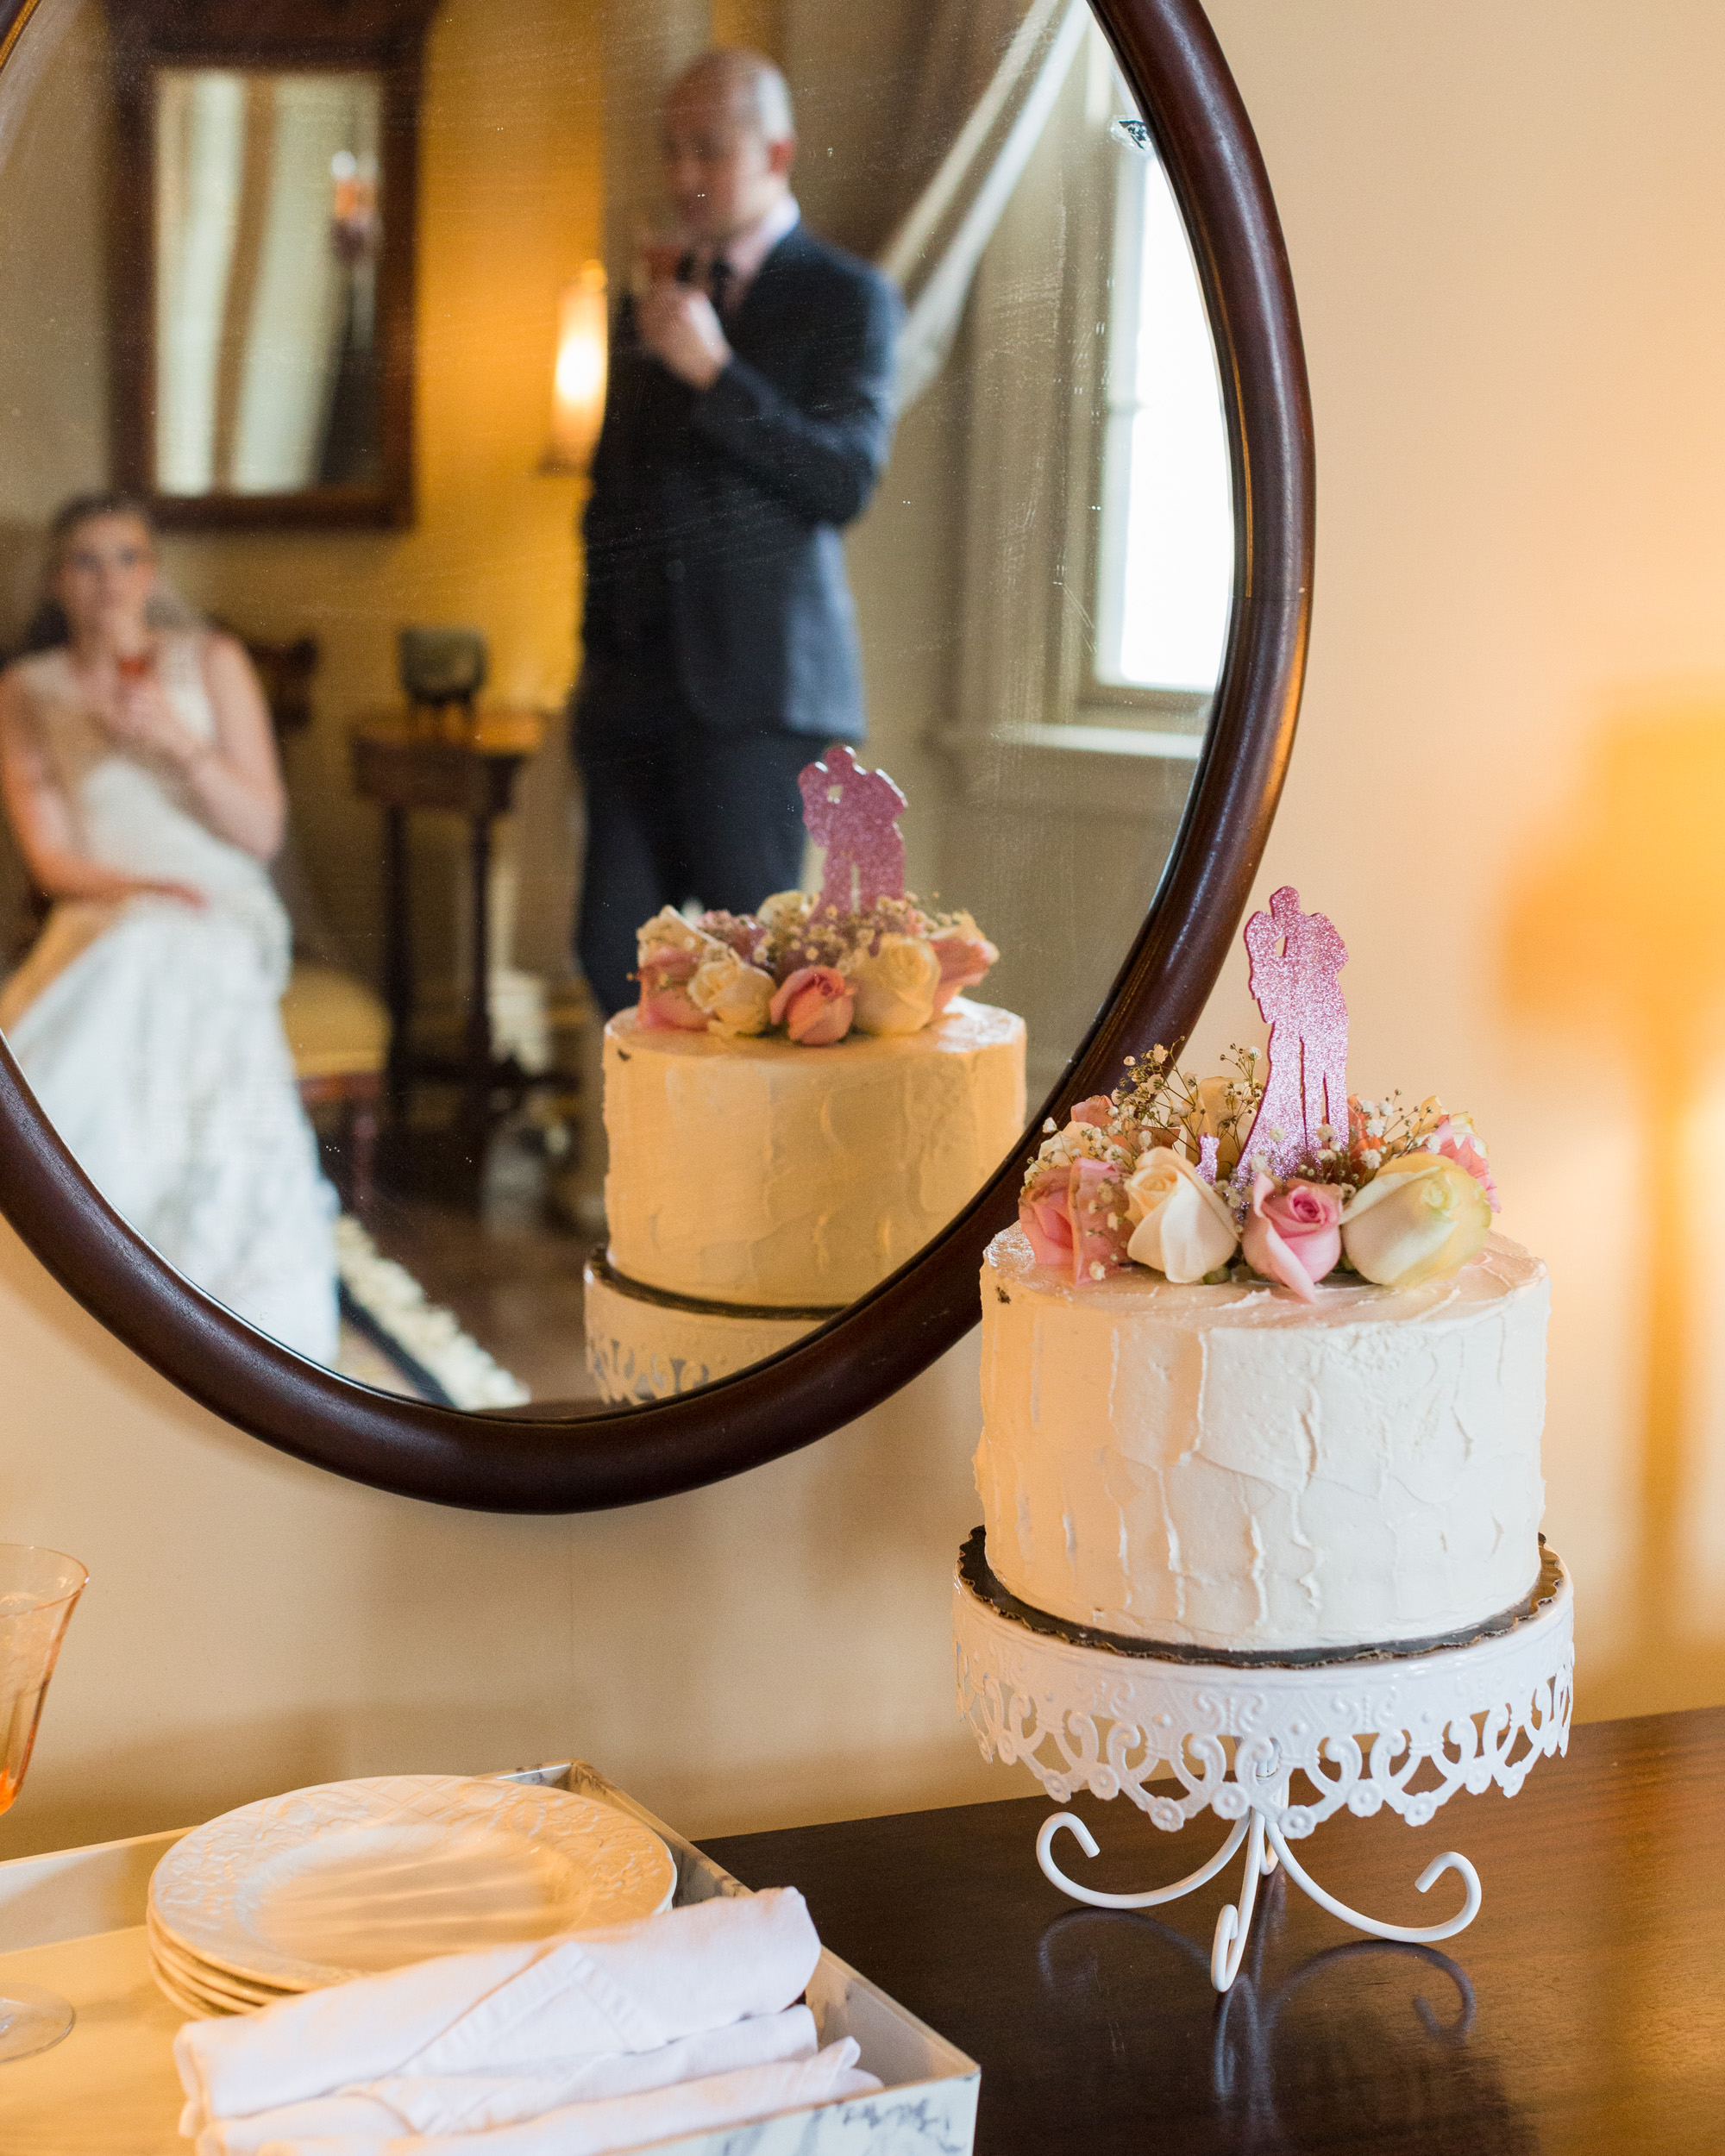 Elegant bride and groom, reflected in a mirror, sip champagne with their wedding cake in the photo foreground by Laura Billingham Photography